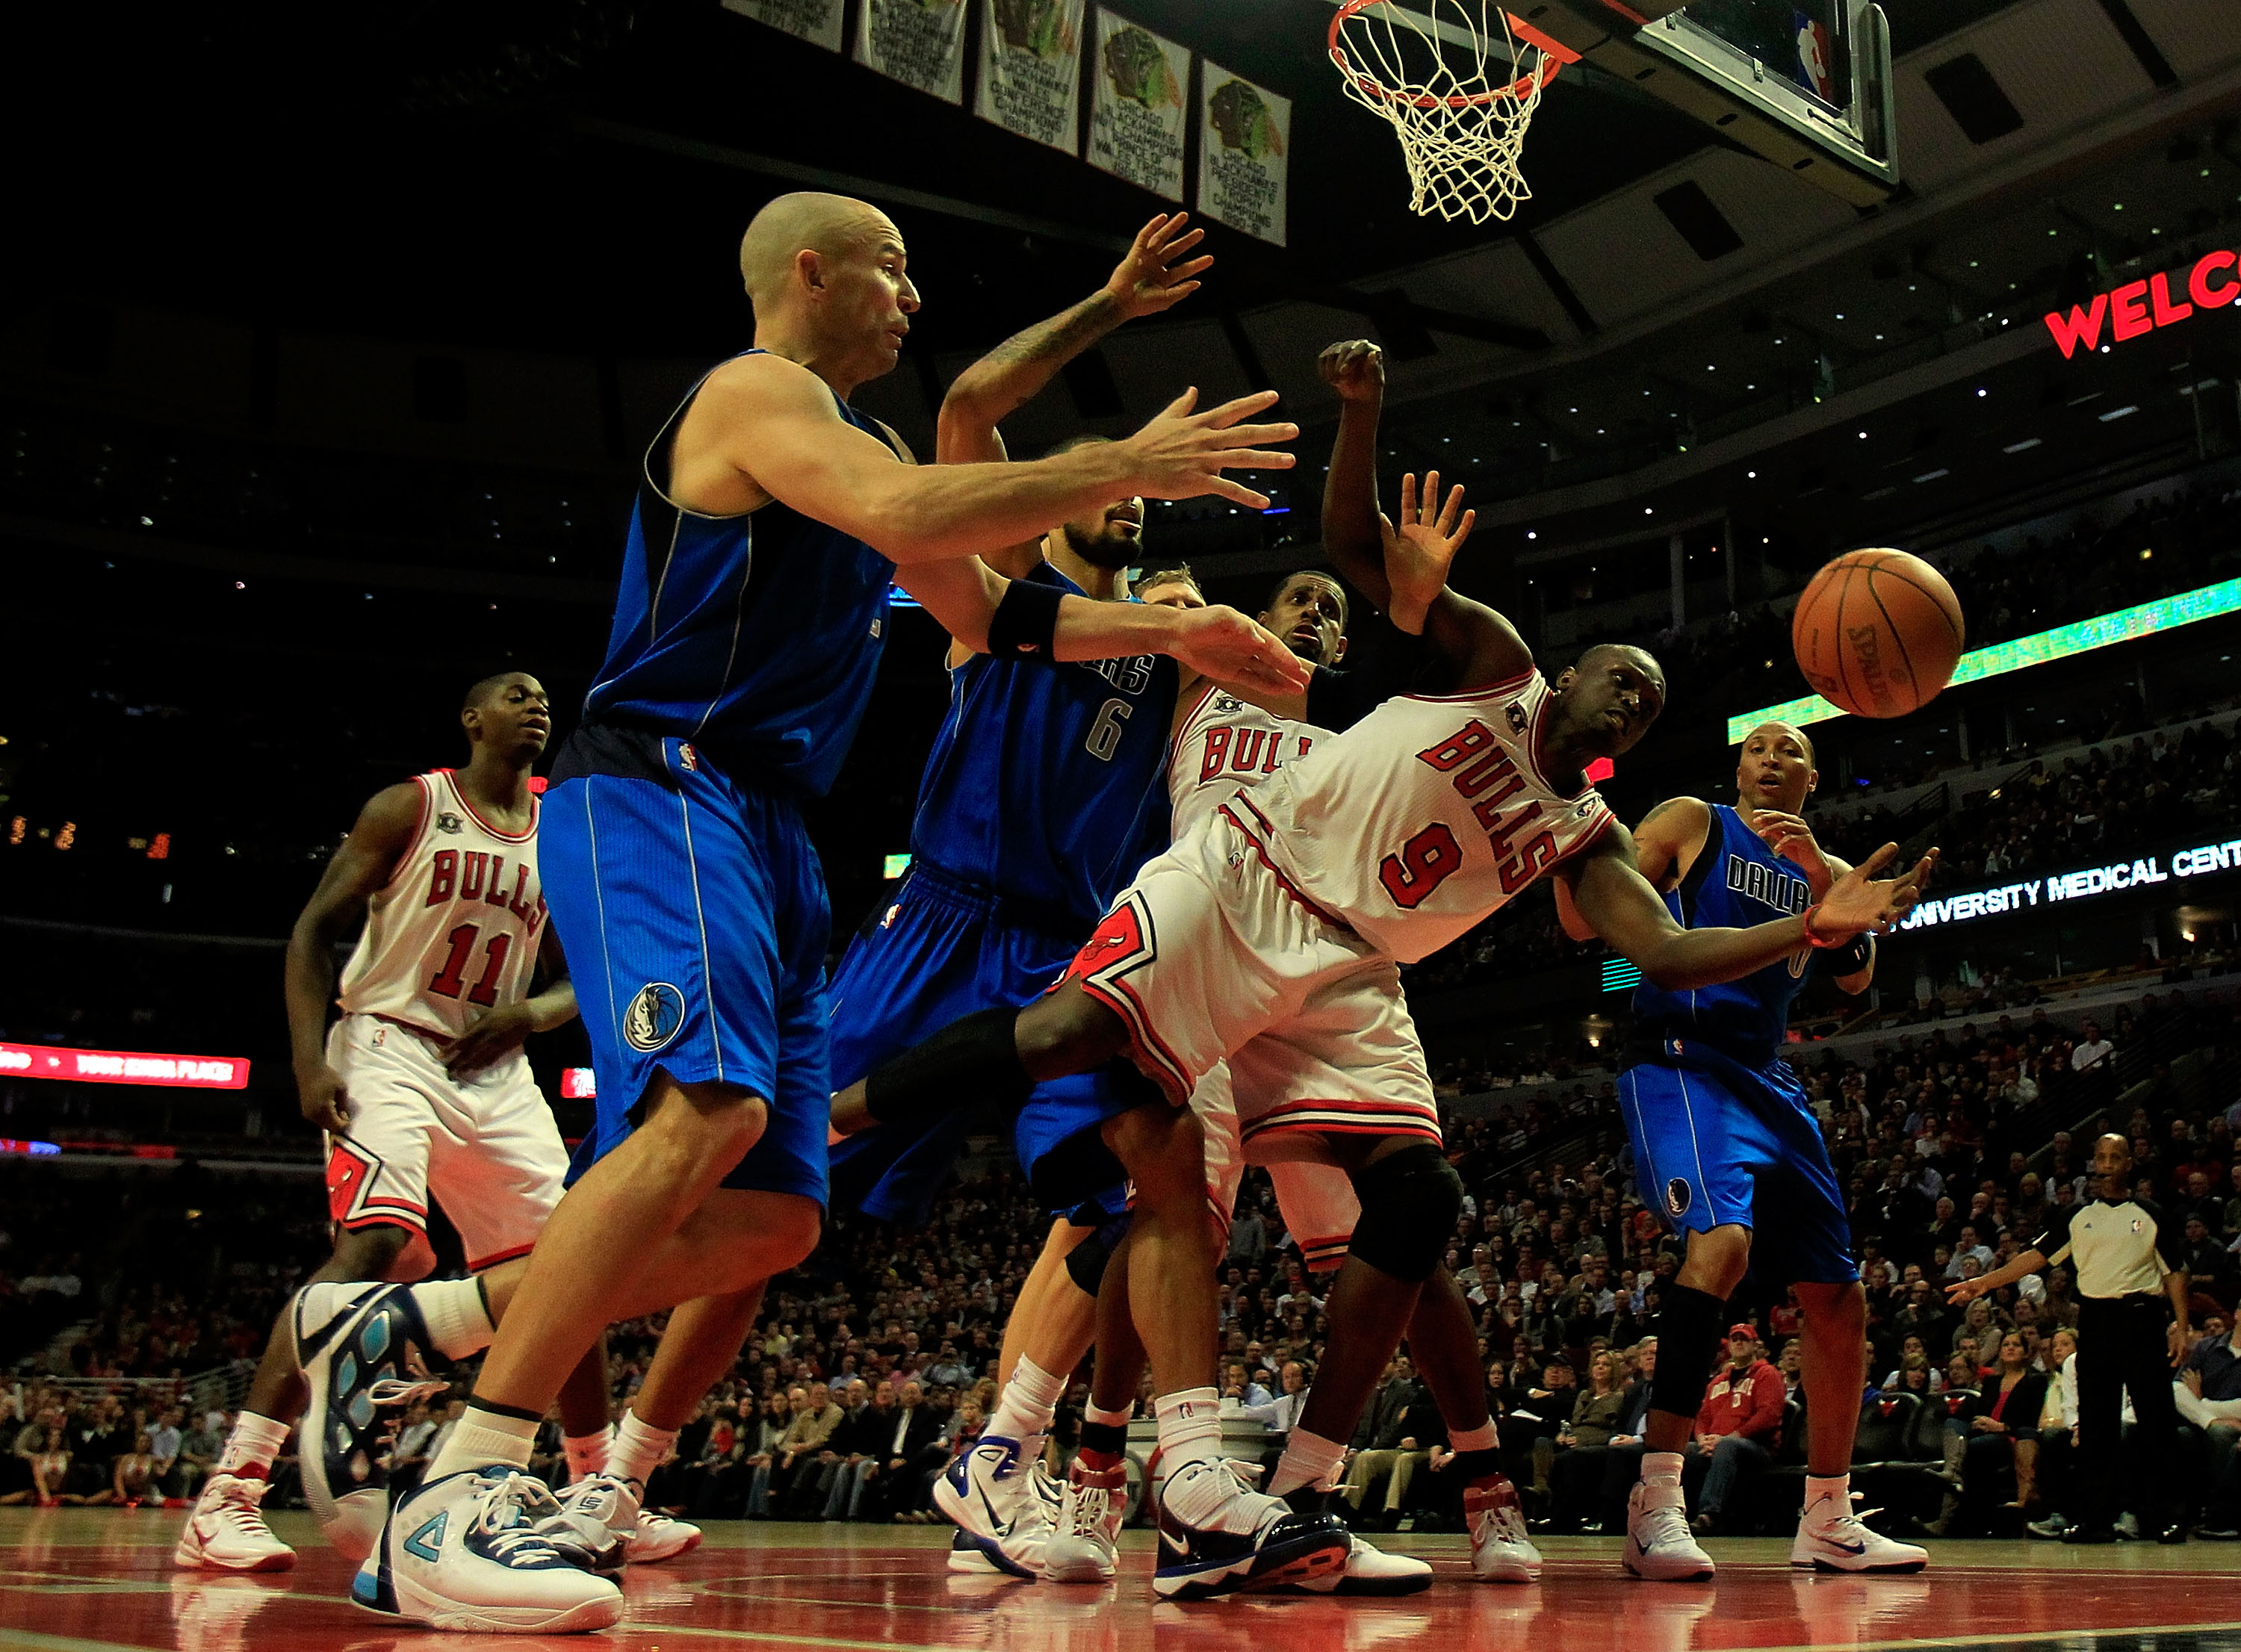 CHICAGO, IL - JANUARY 20: Loul Deng #9 of the Chicago Bulls reaches for the ball under pressure from Tyson Chandler #6 and Jason Kidd #2 of the Dallas Mavericks at the United Center on January 20, 2011 in Chicago, Illinois. The Bulls defeated the Maverick